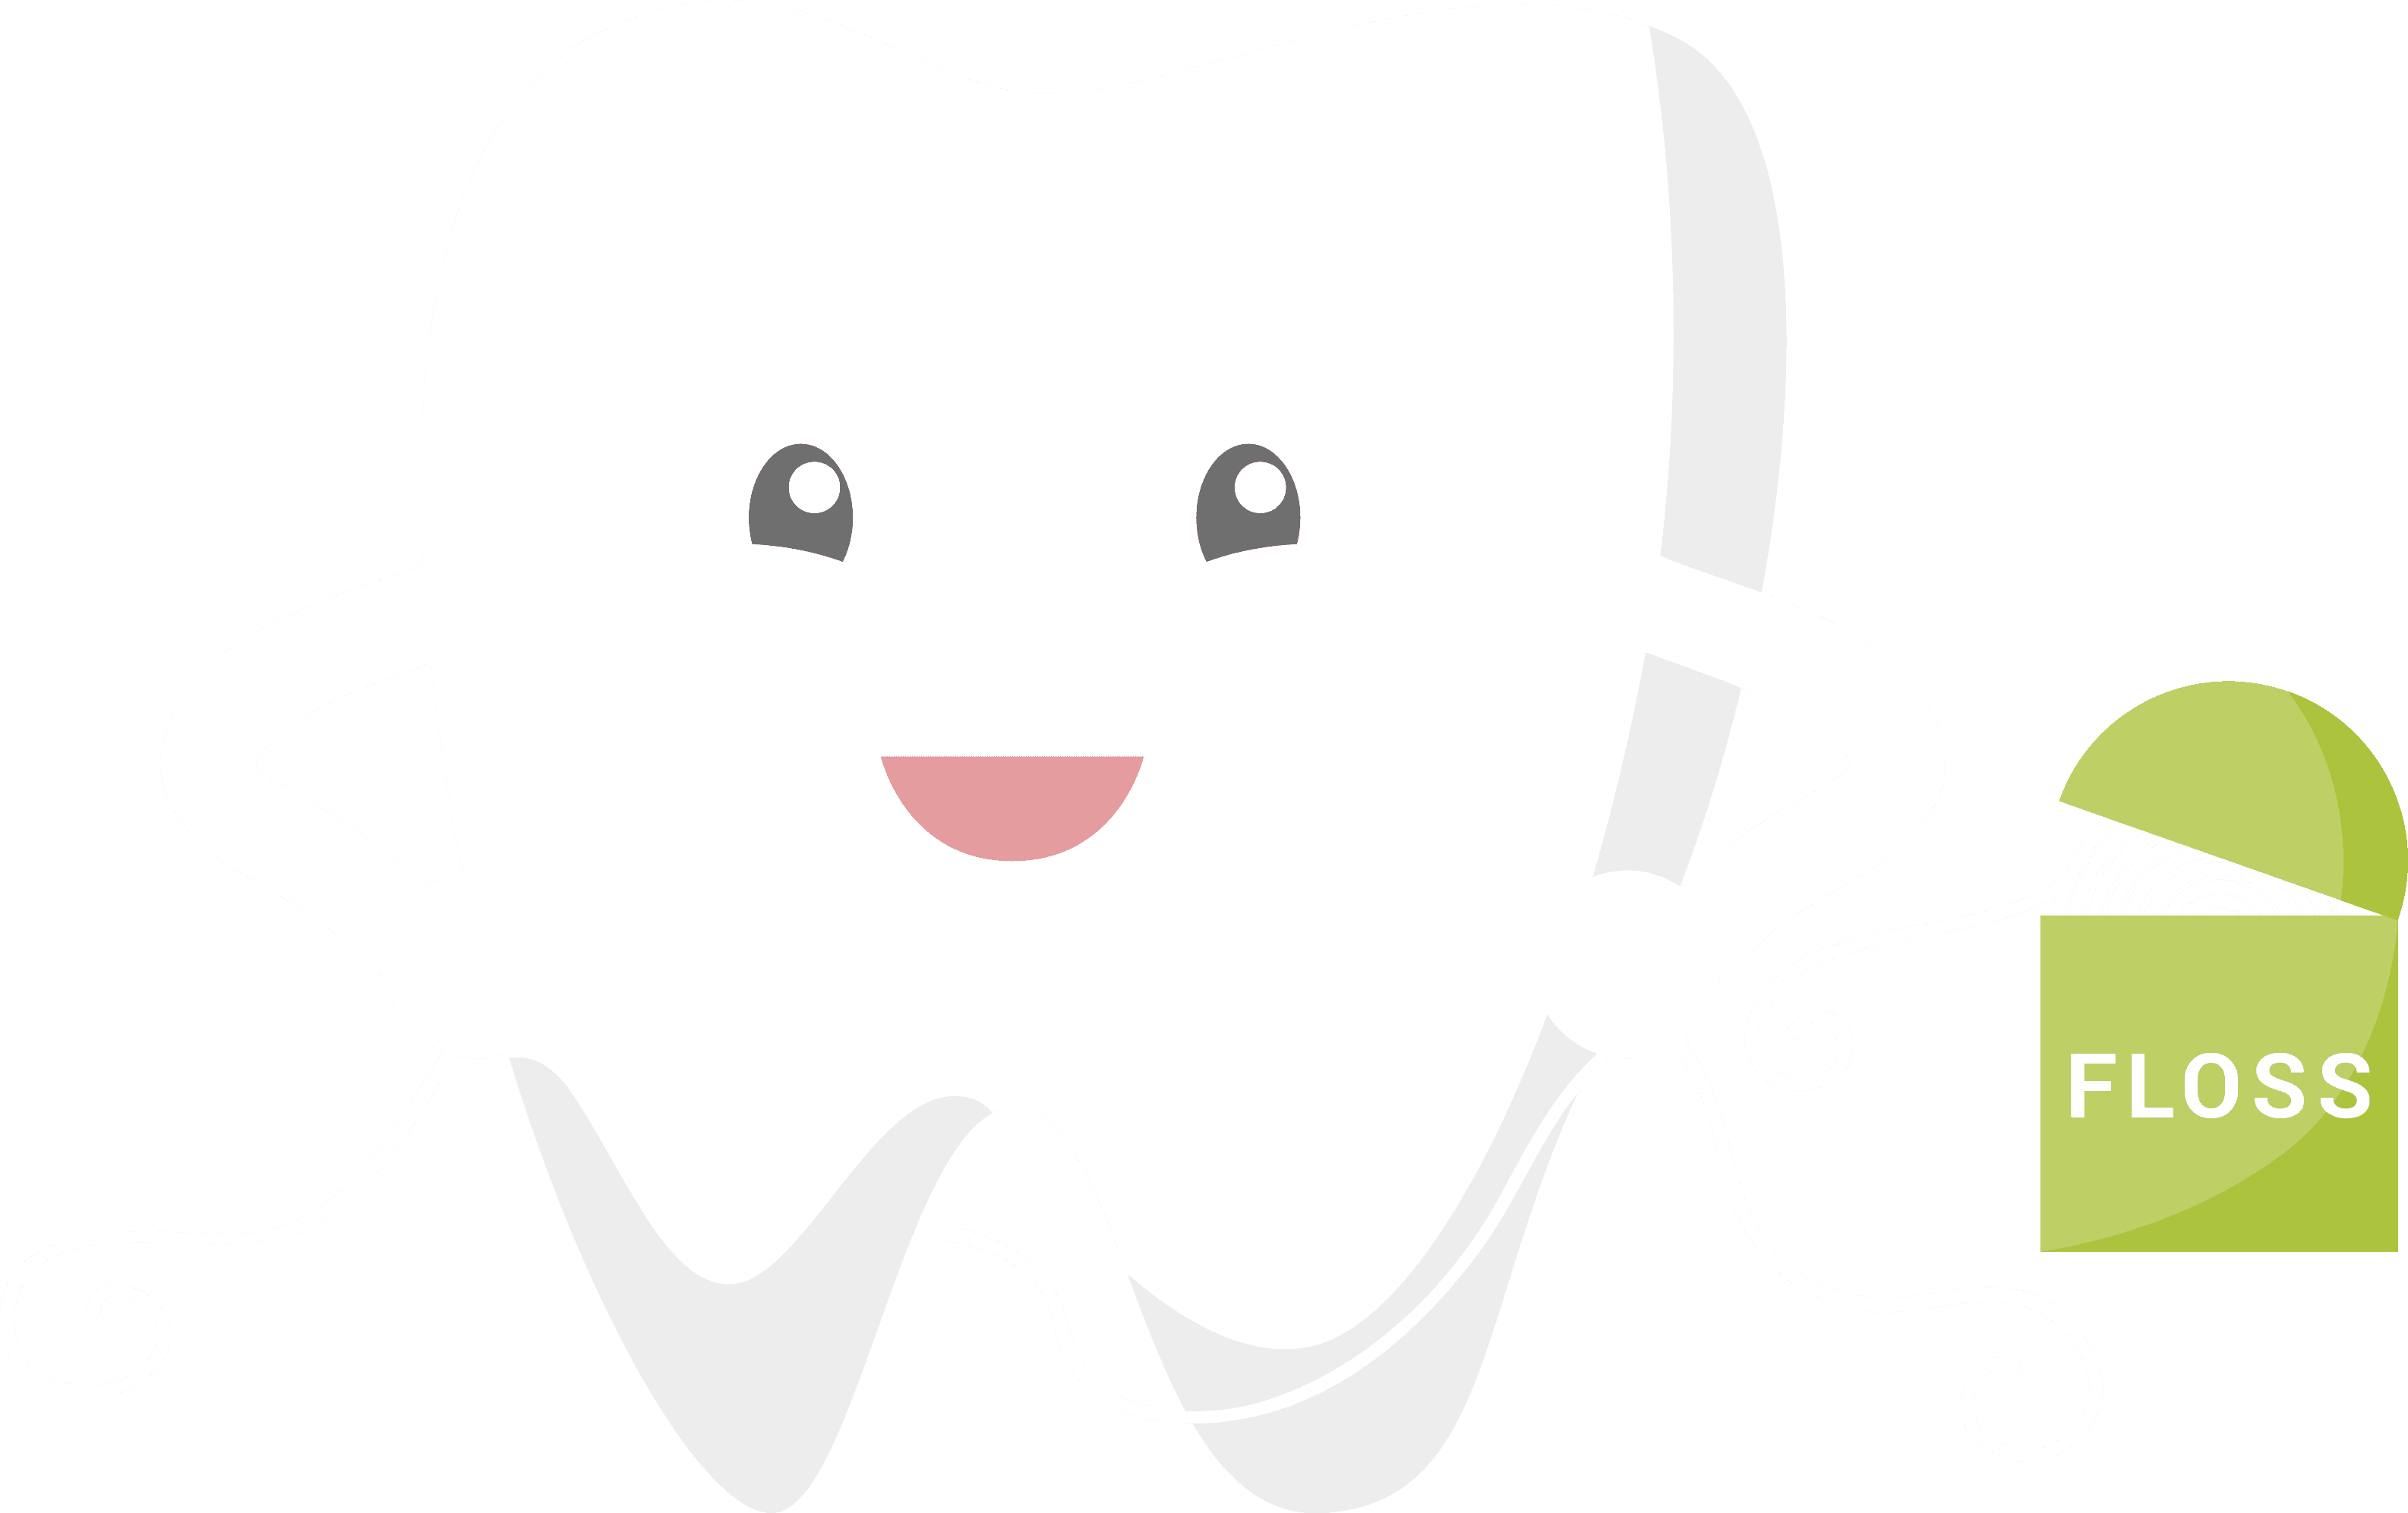 Brushing and flossing dr. Dentist clipart floss